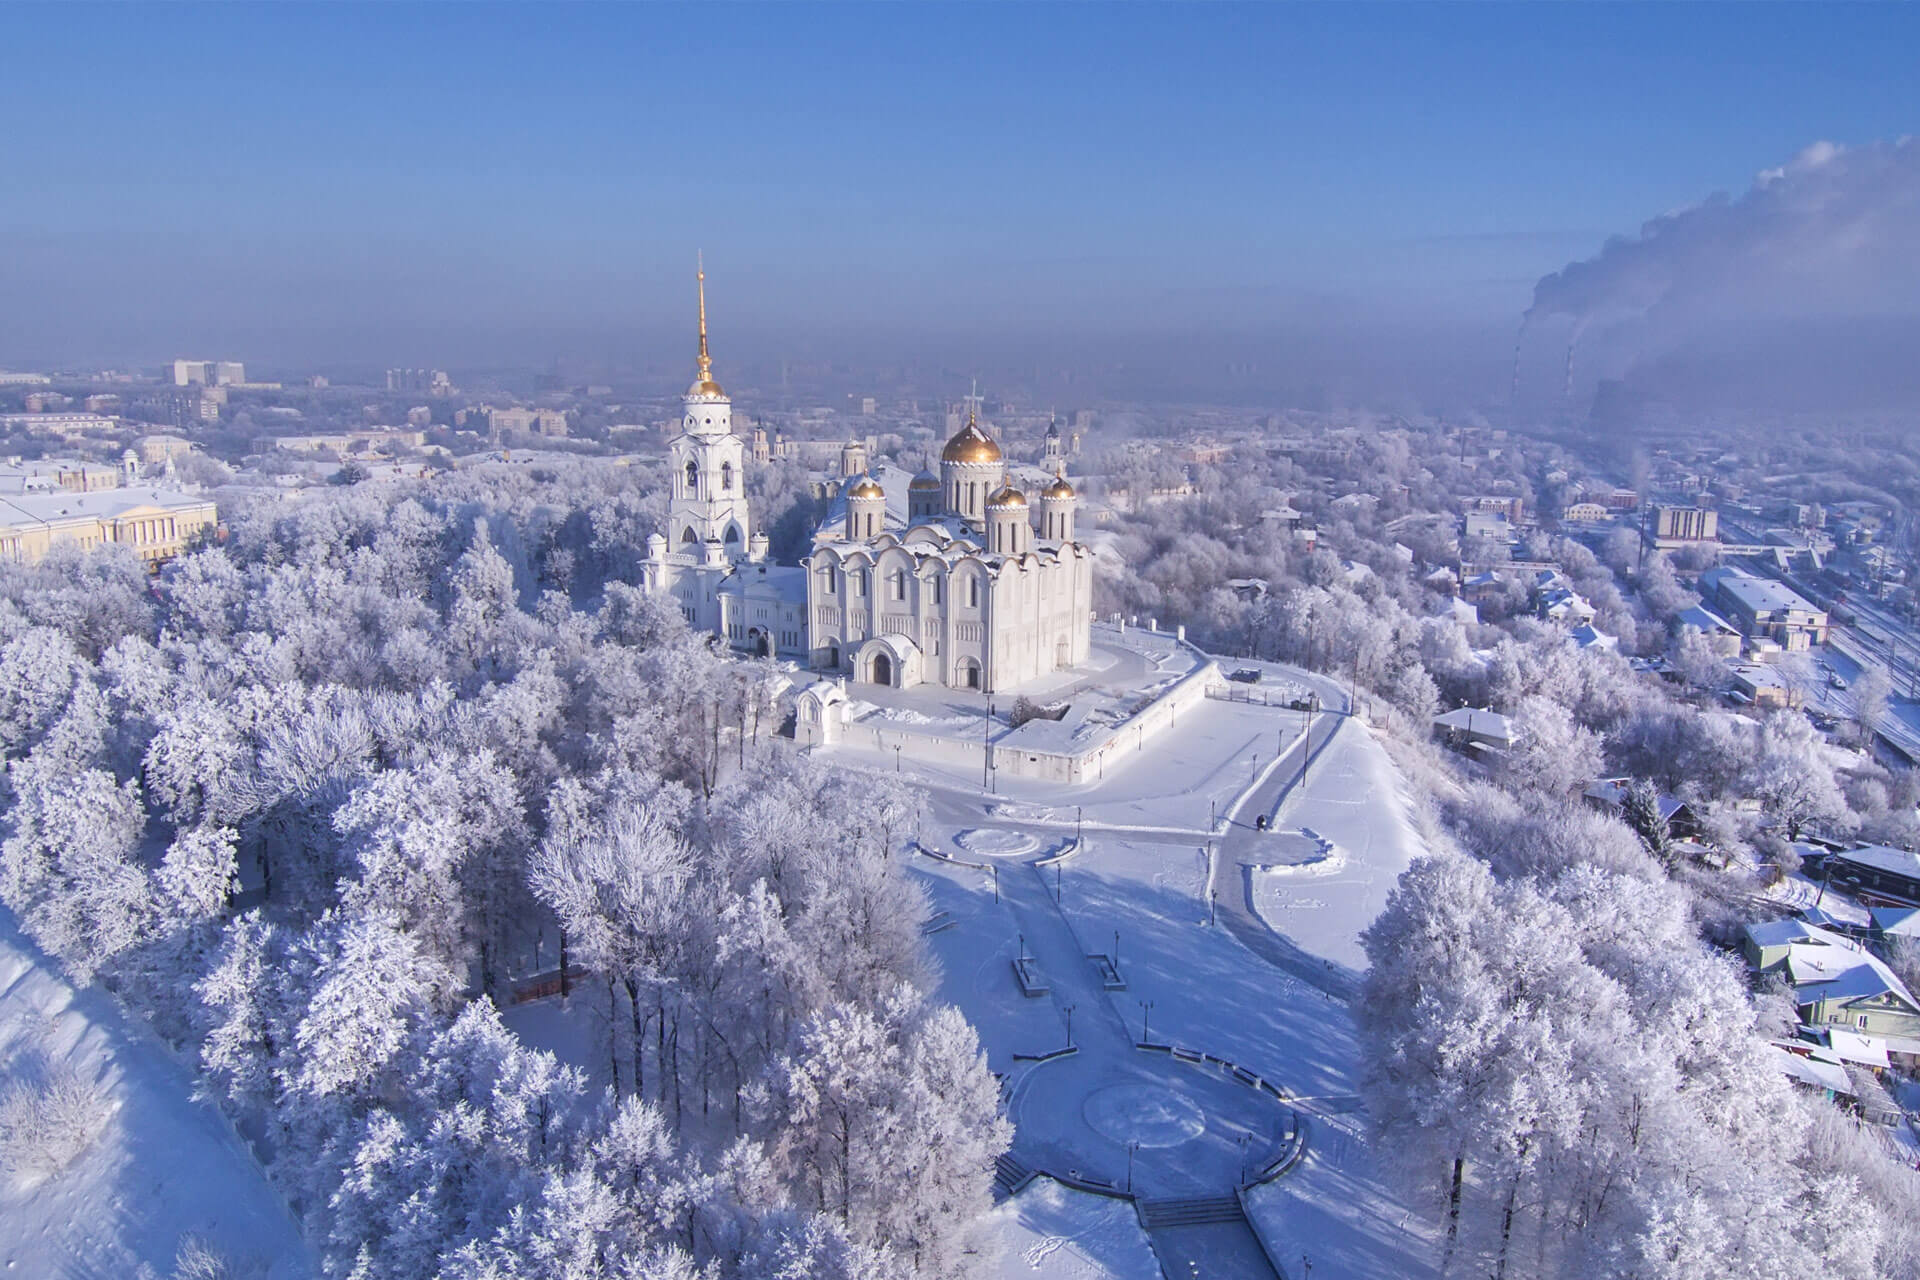 A view to a big white cathedral with golden domes from the bird-eye view in winter.